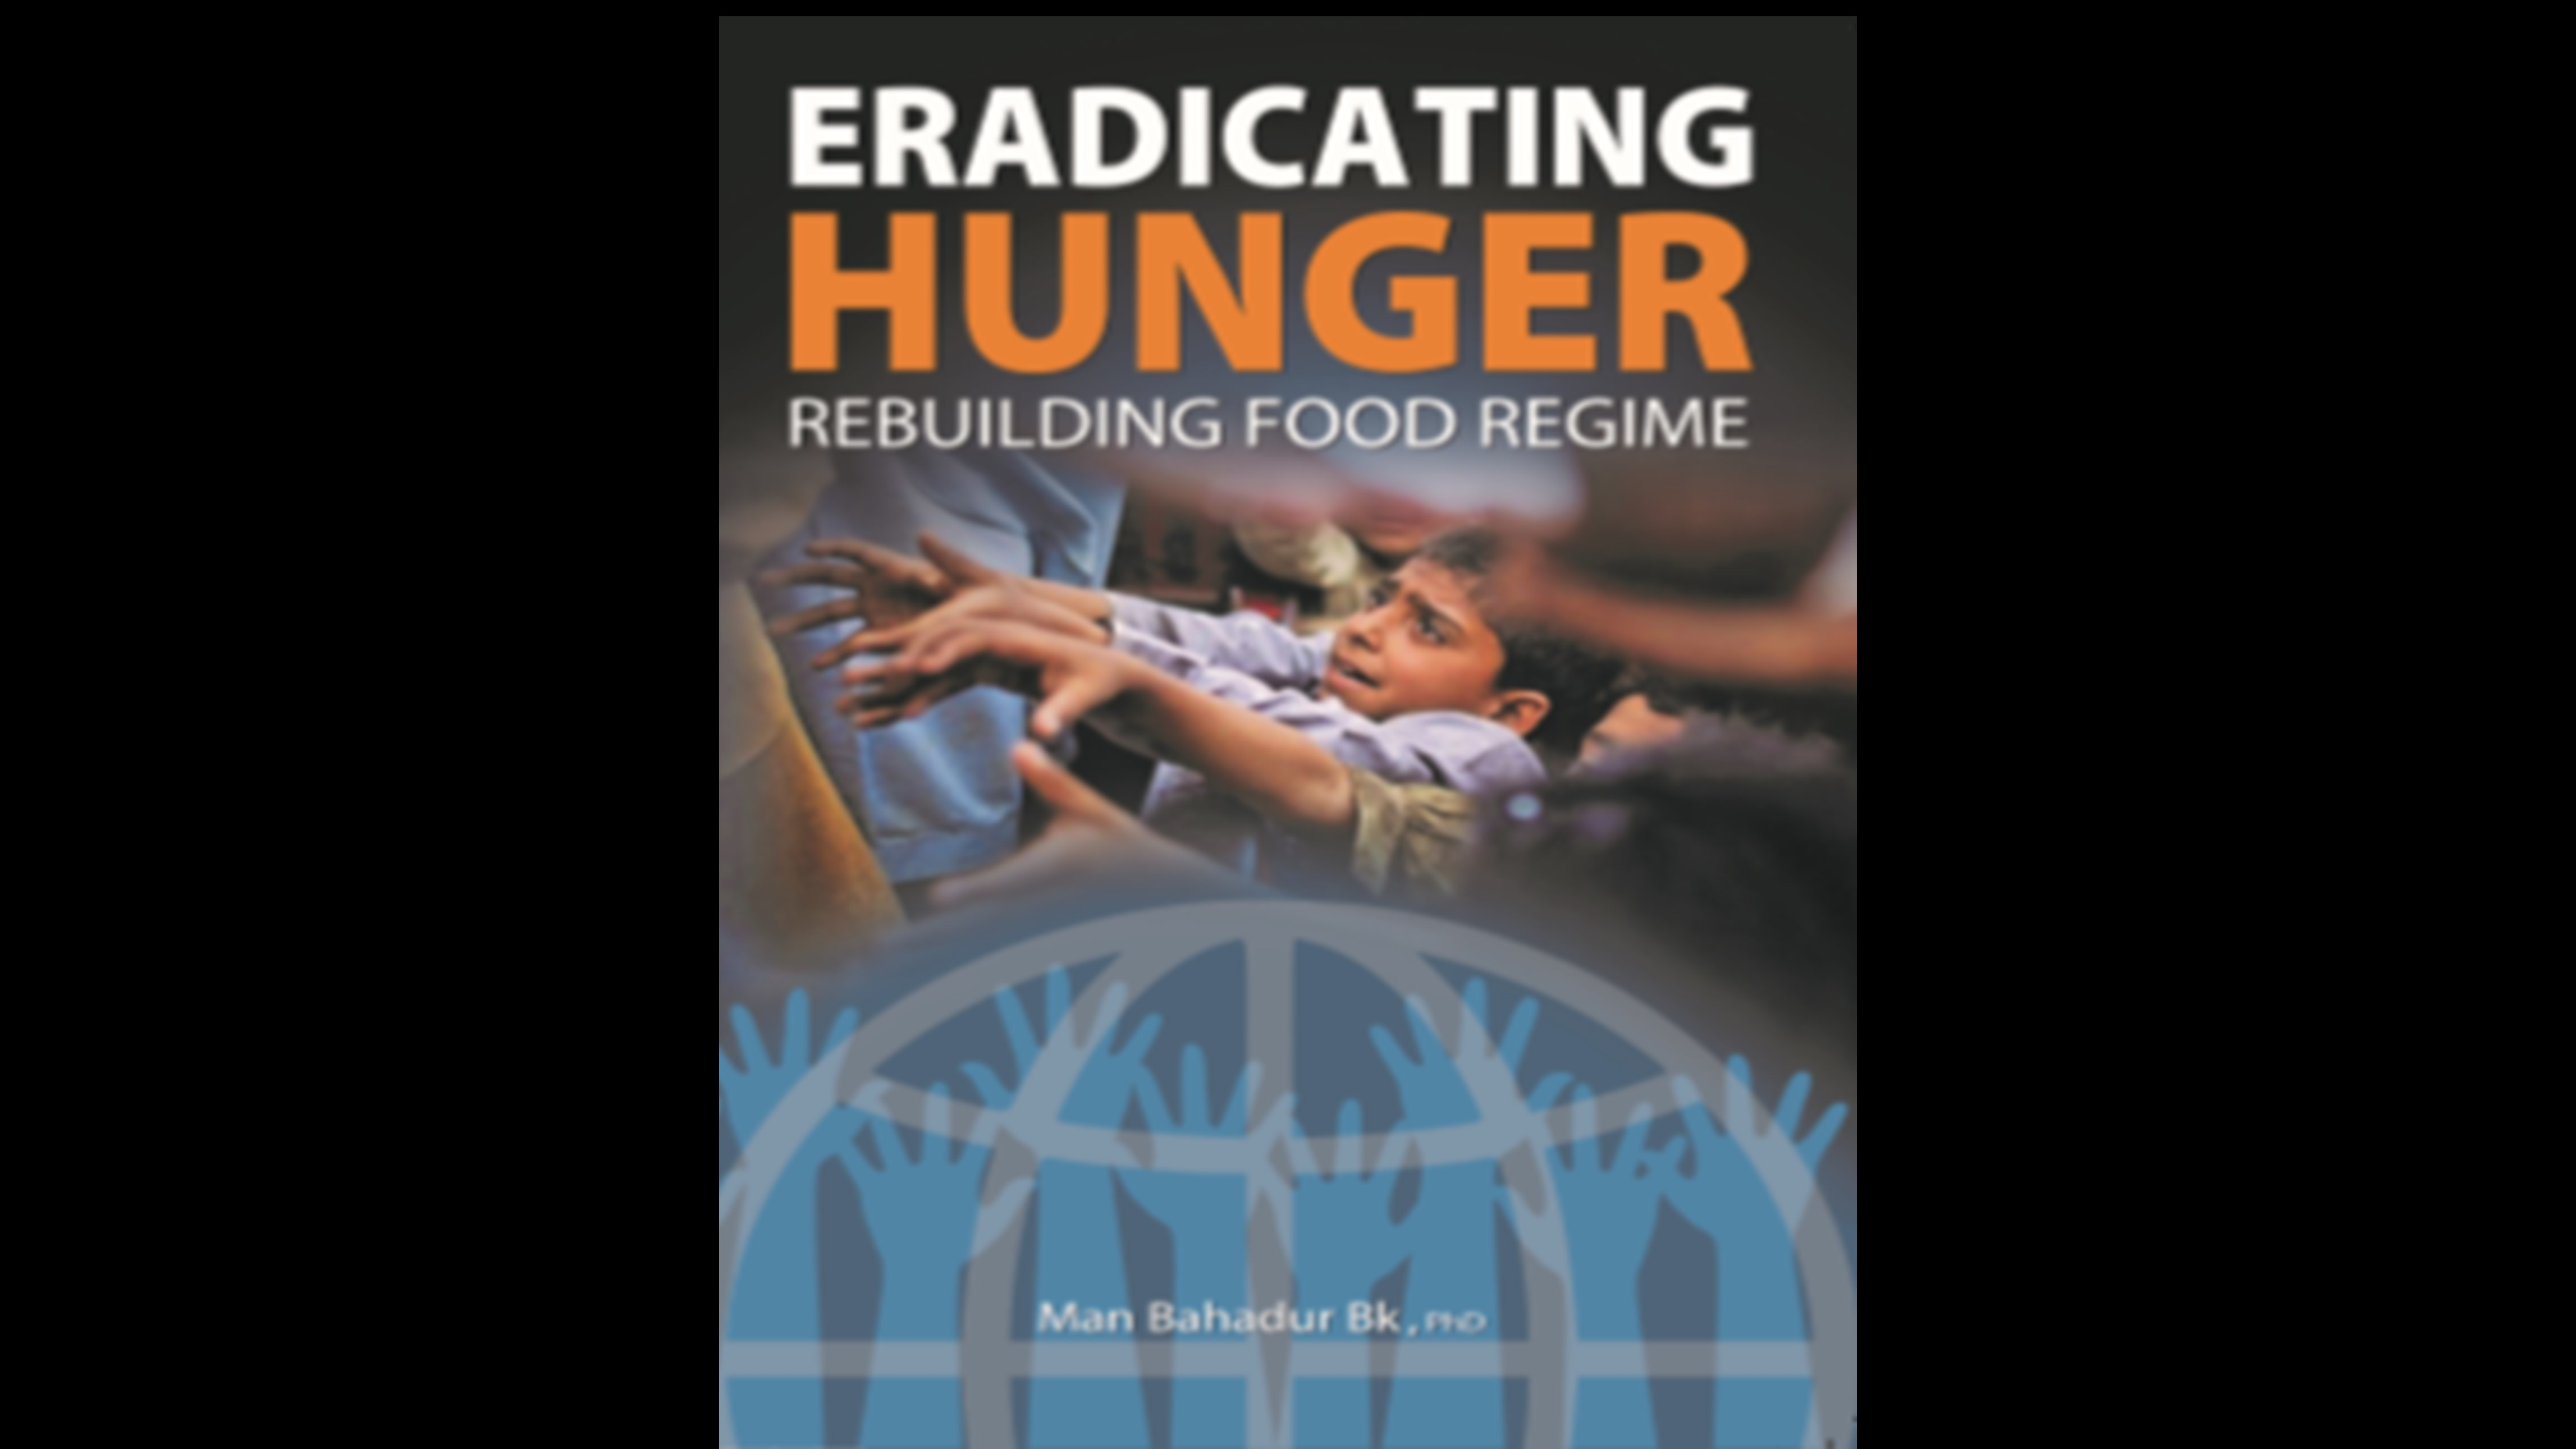 Eradicating Hunger: Rebuilding Food Regime